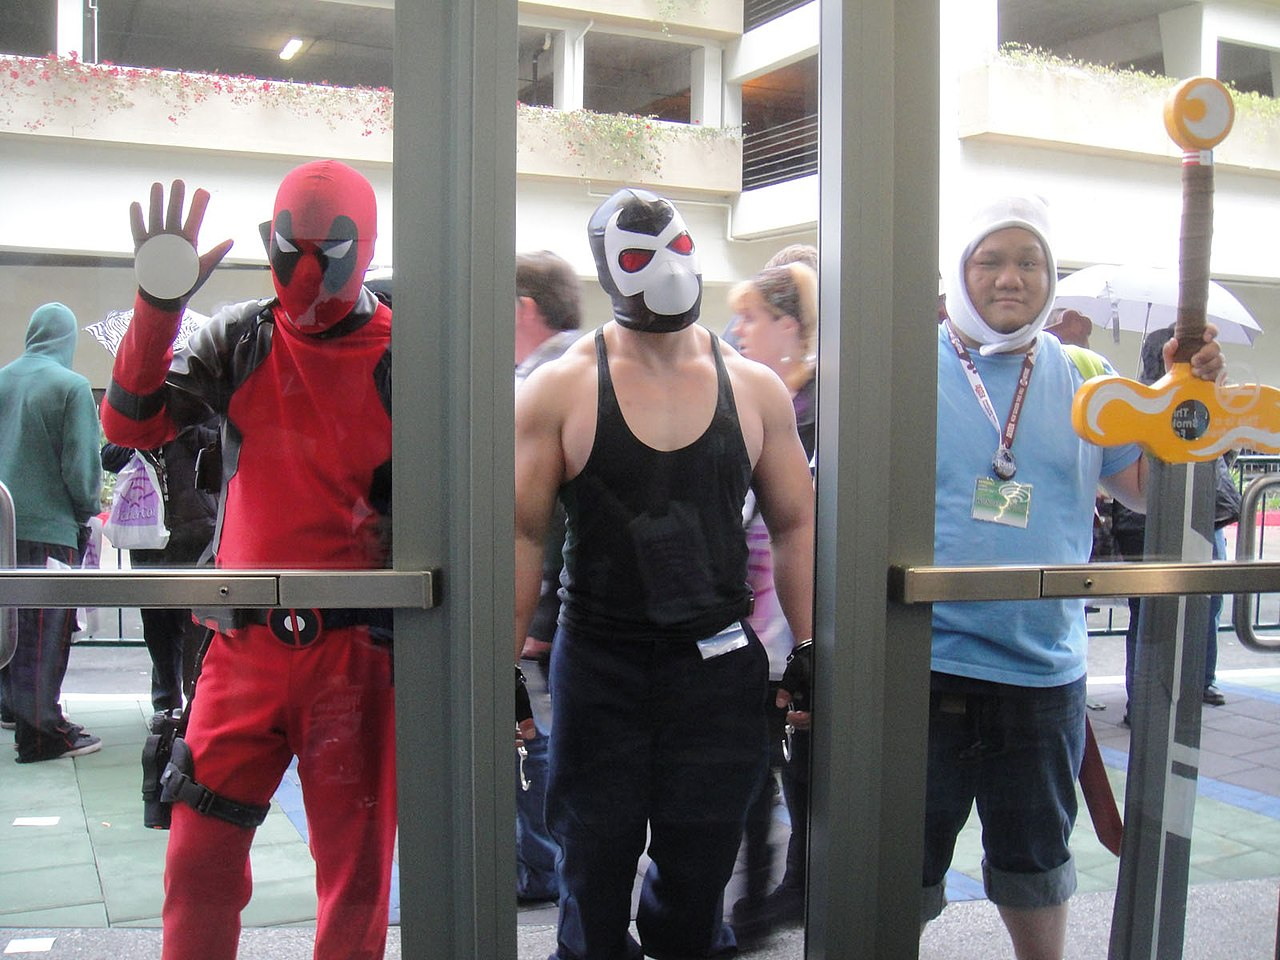 file:wondercon 2012 - deadpool, bane, and finn from adventure time